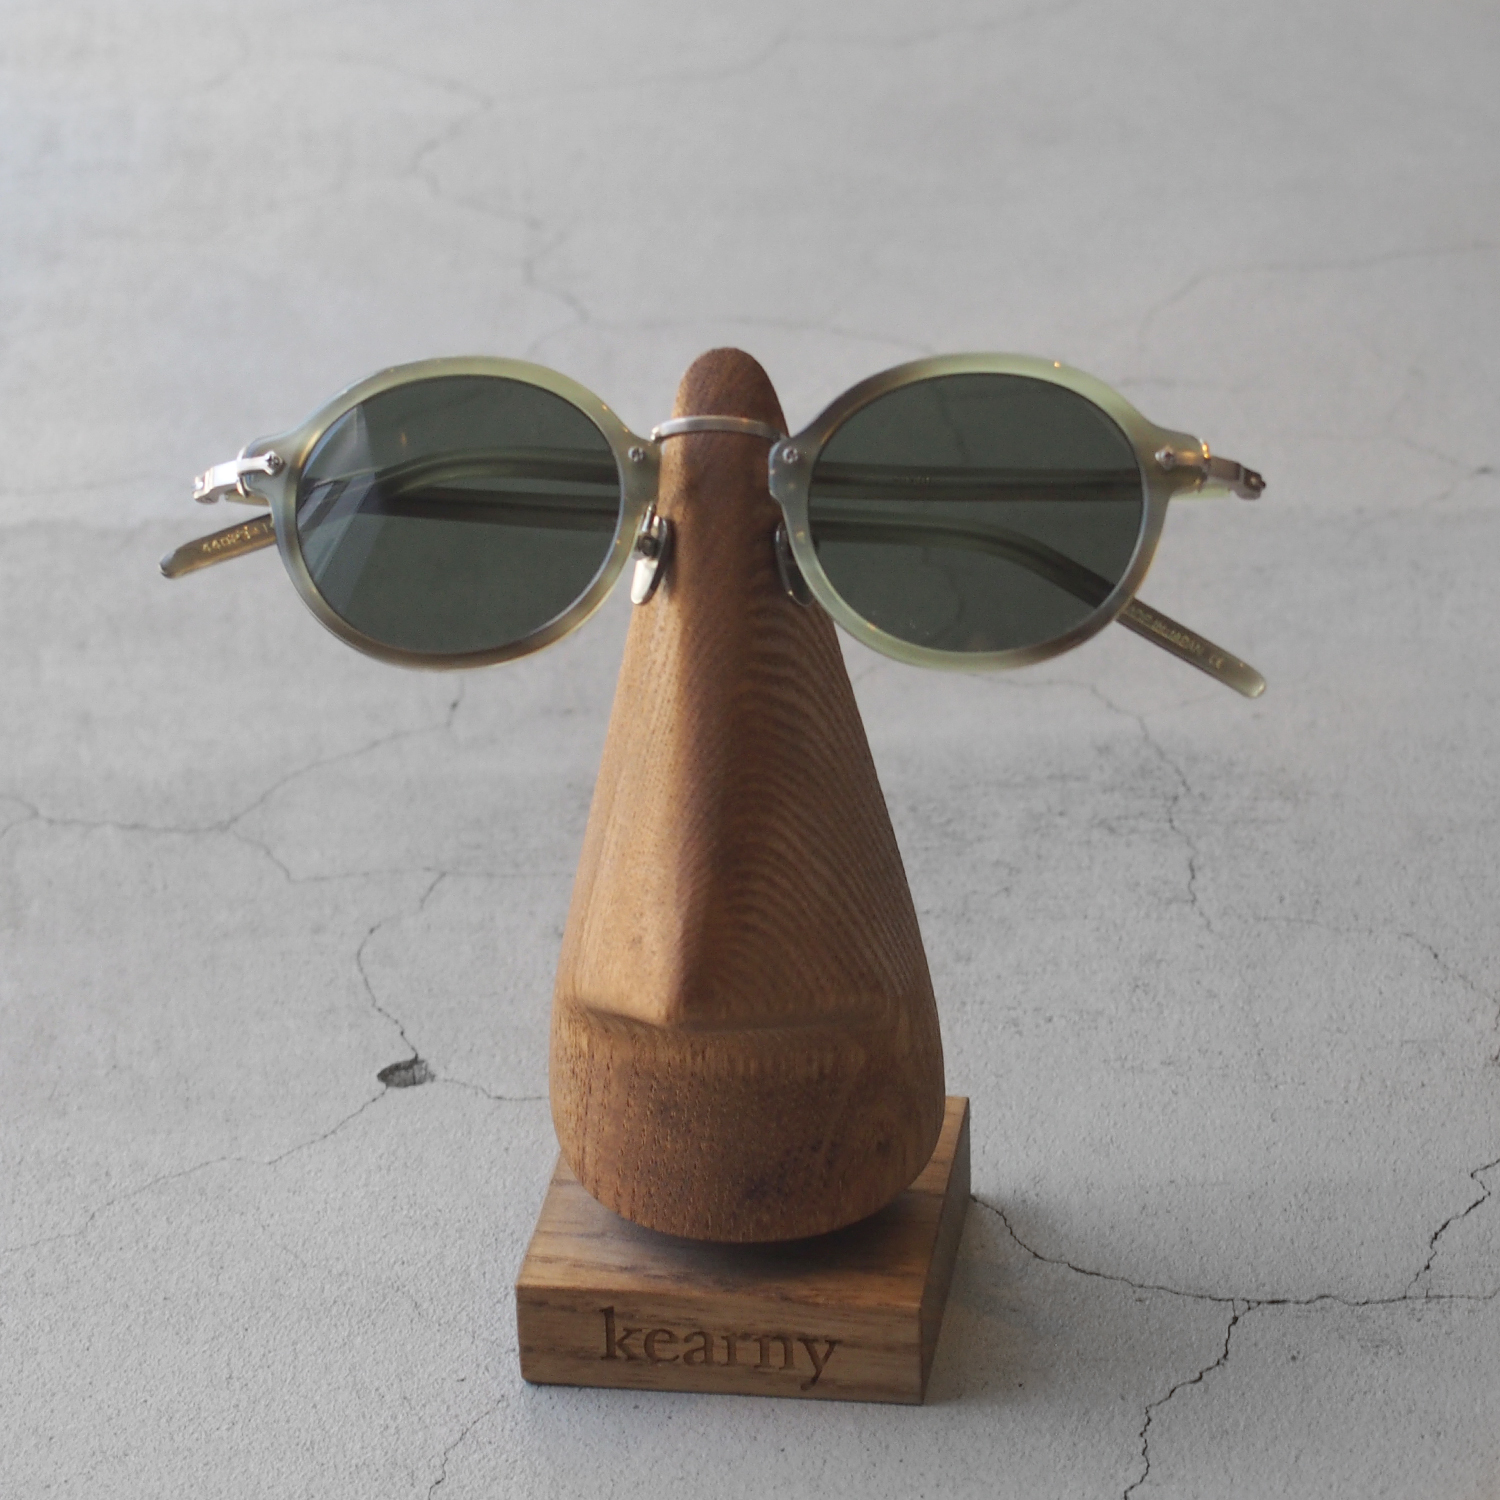 kearny susan sunglasses green